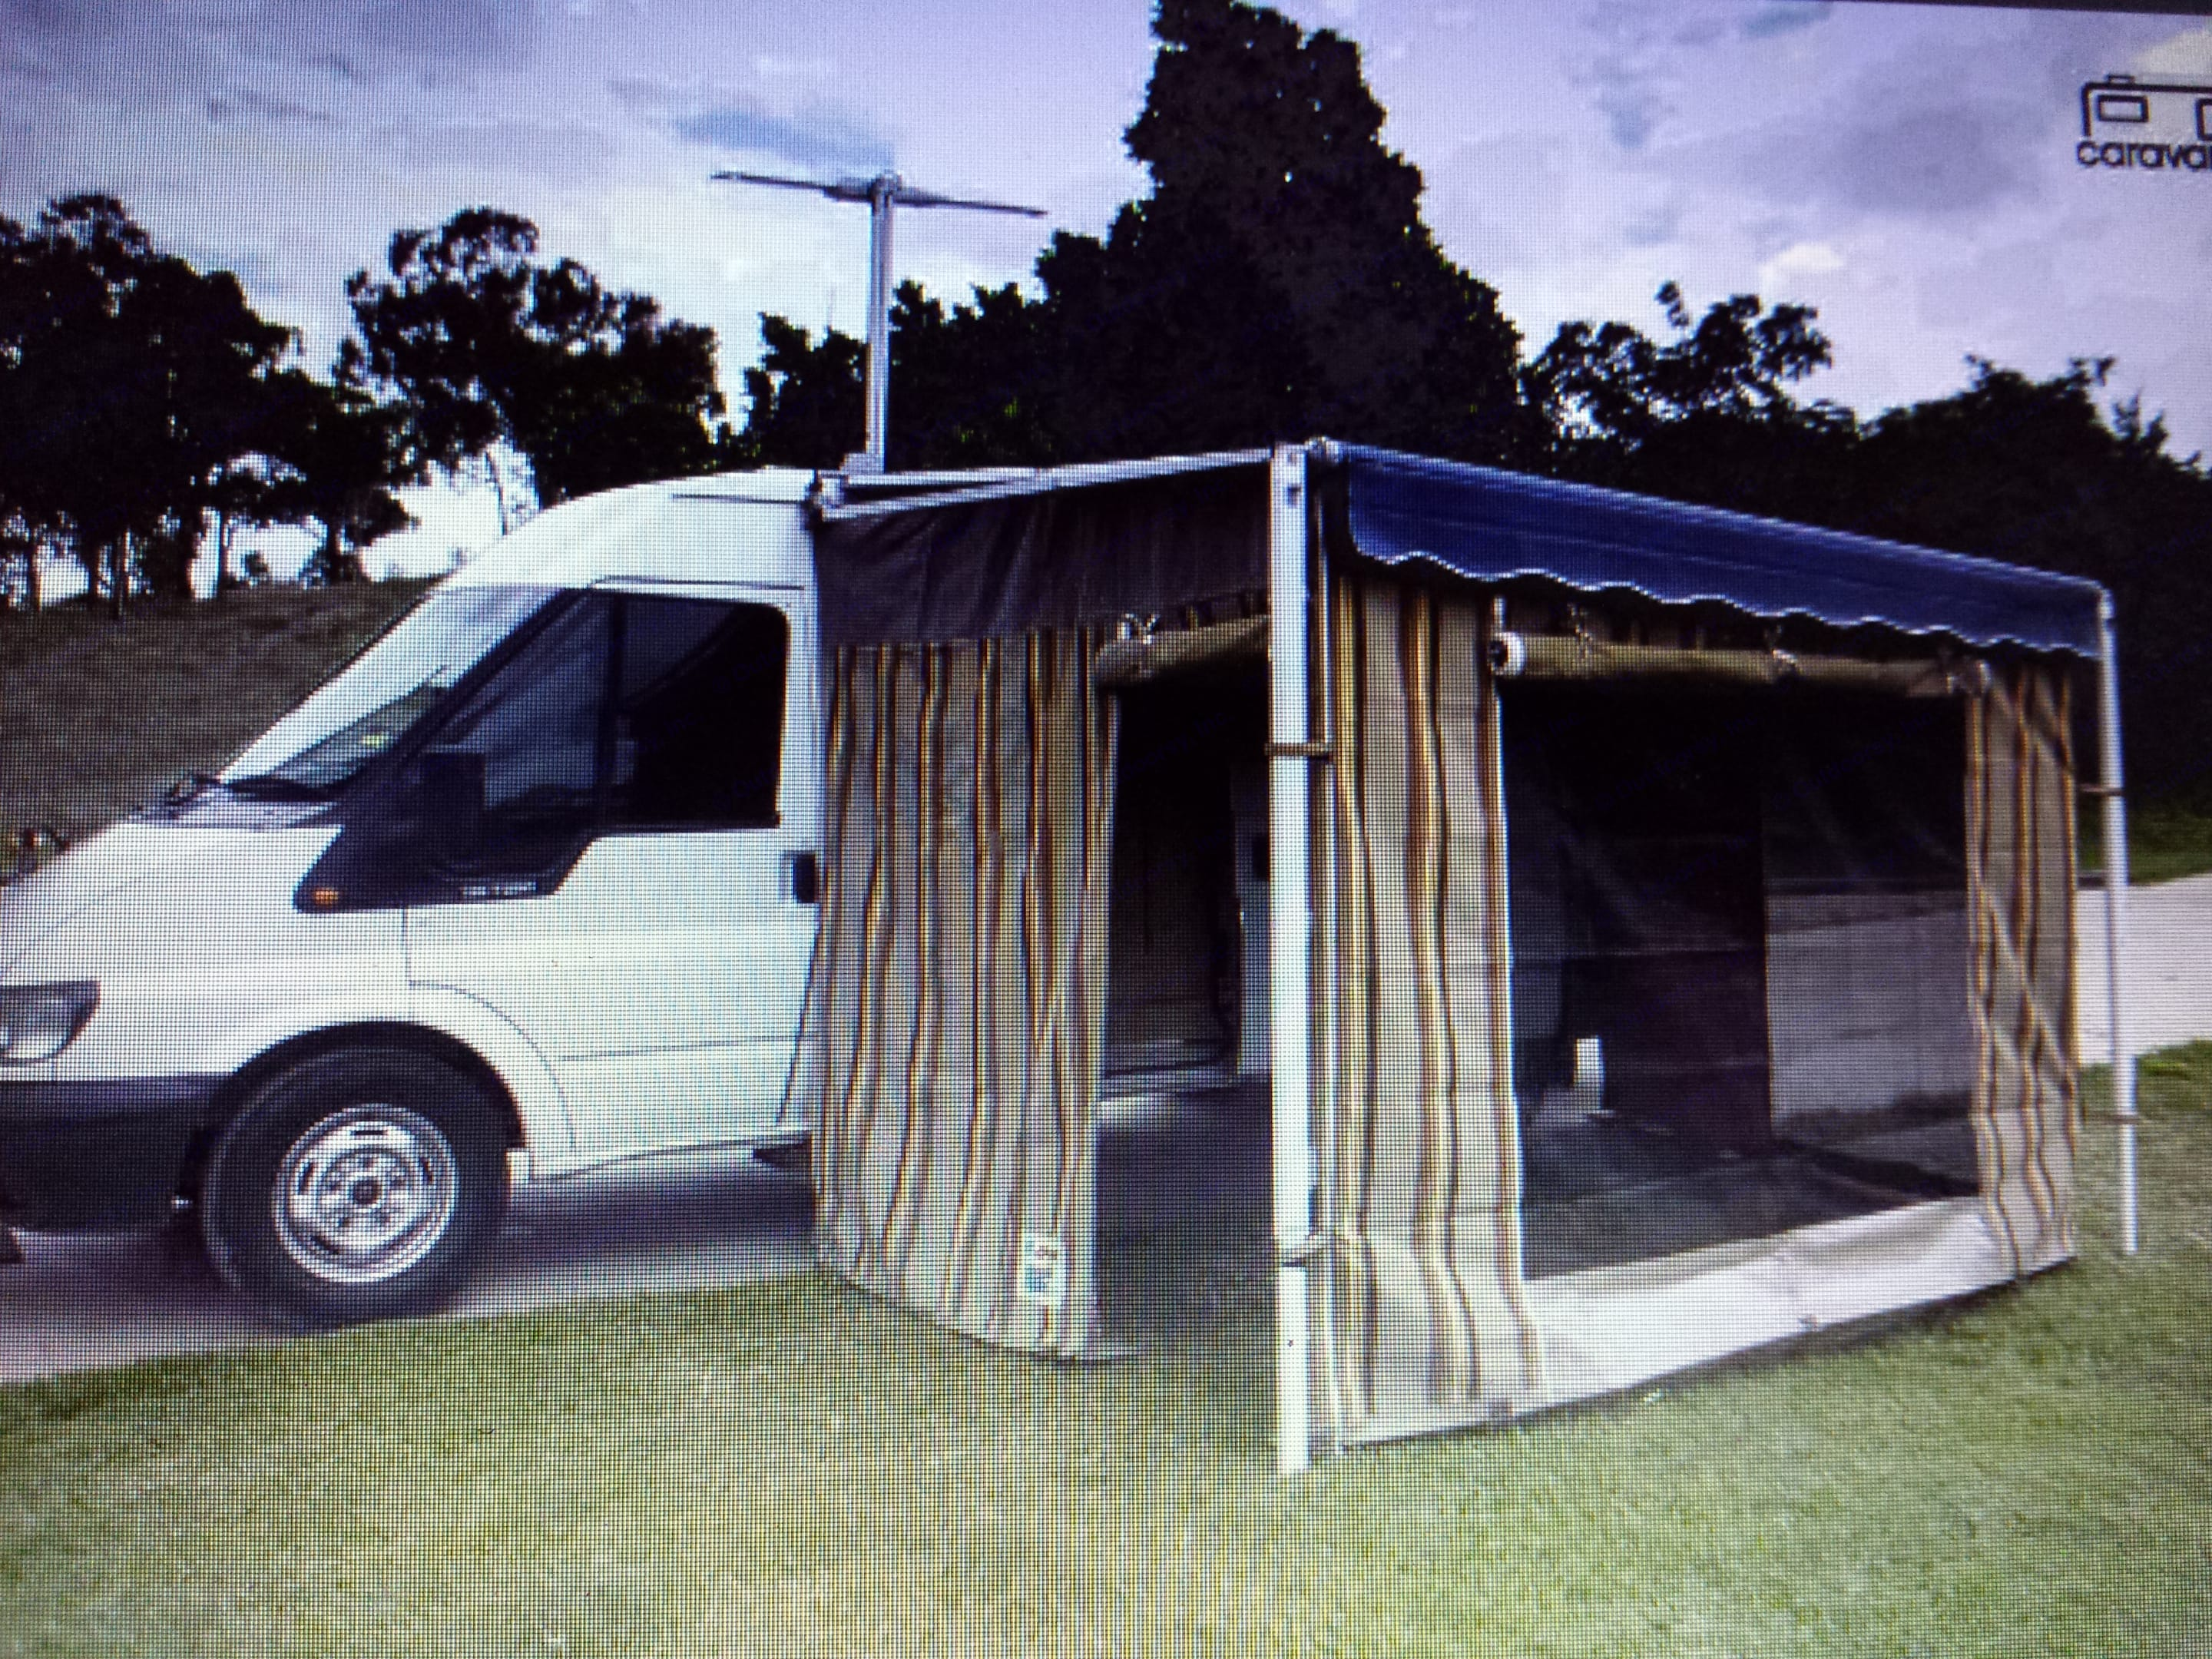 Full annex connected to awning with antenna receiving free to air TV. Annex can be assembled by one person in approx 20min. Ford Transit Custom 2006